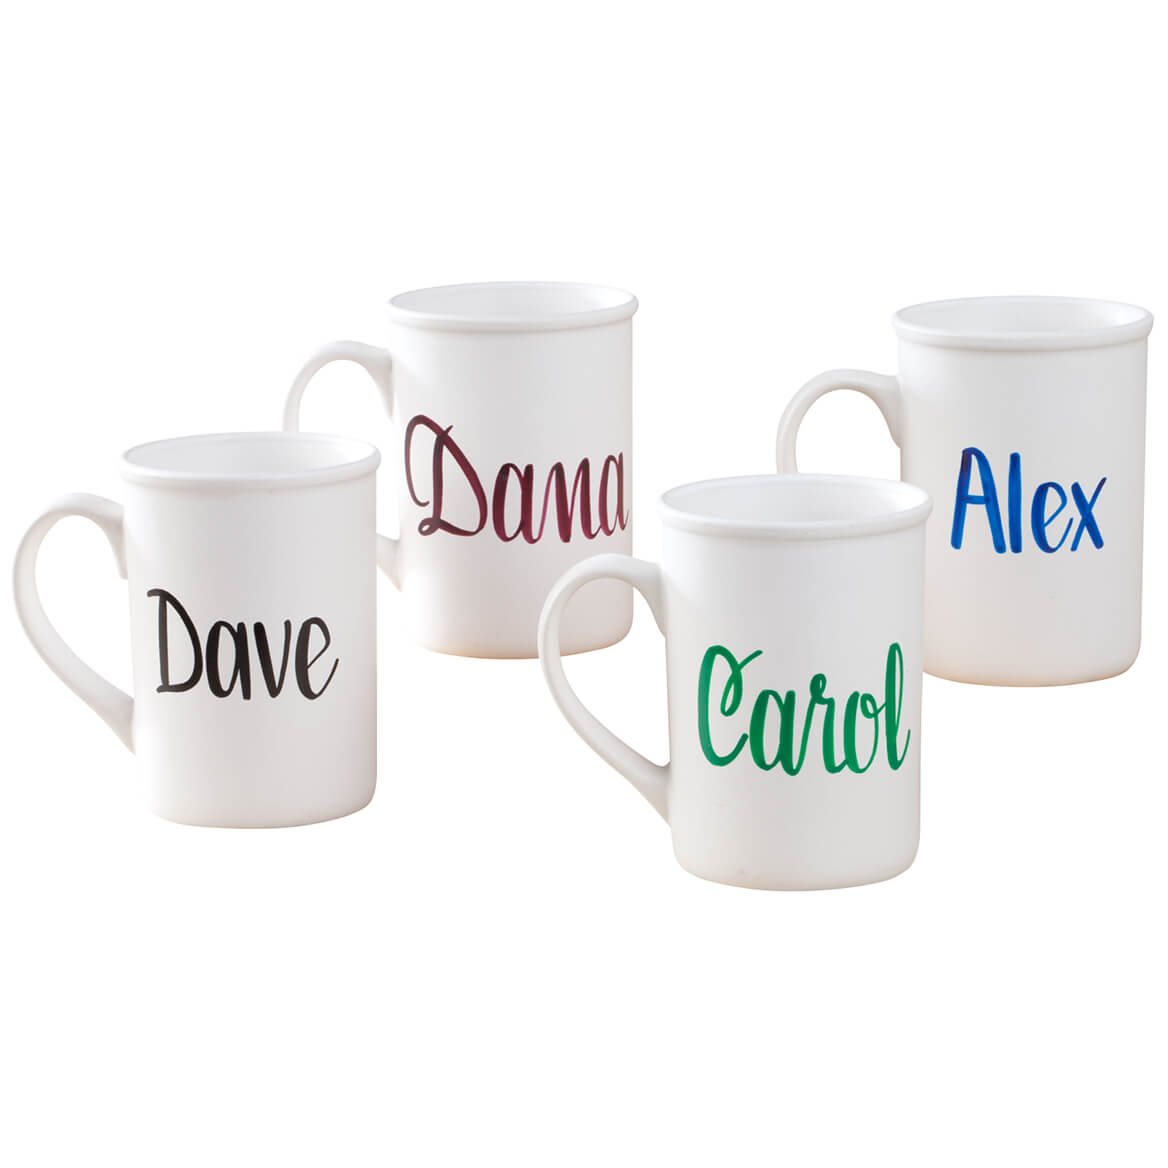 Personalized Coffee Mug Personalized coffee mug serves personalizedonality! Gourmet 14 oz. custom coffee mug serves coffee, tea, hot chocolate. Print name, up to 12 letters/spaces. Specify ink color: burgundy, green, black or blue. Hand wash your personalizedonalized coffee cup.